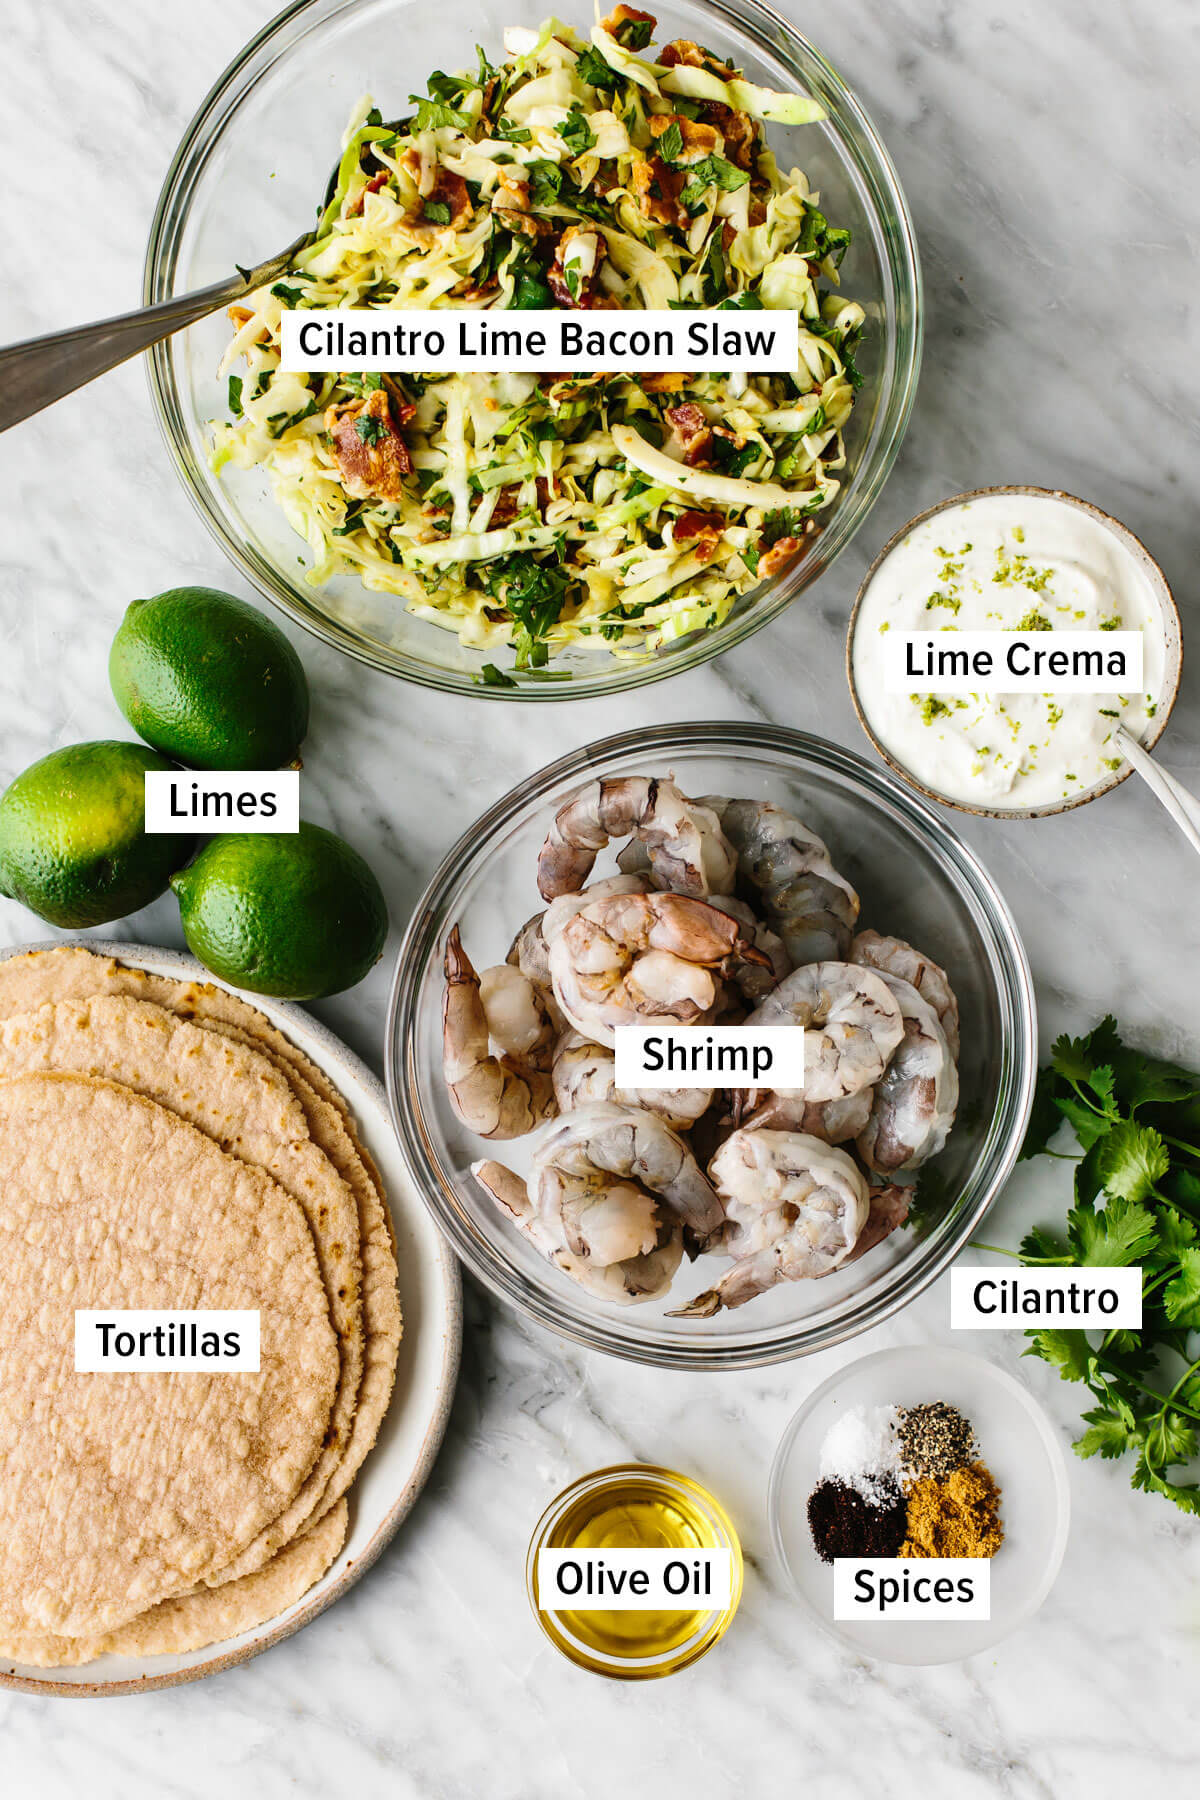 Ingredients for shrimp tacos with cilantro lime slaw on a table